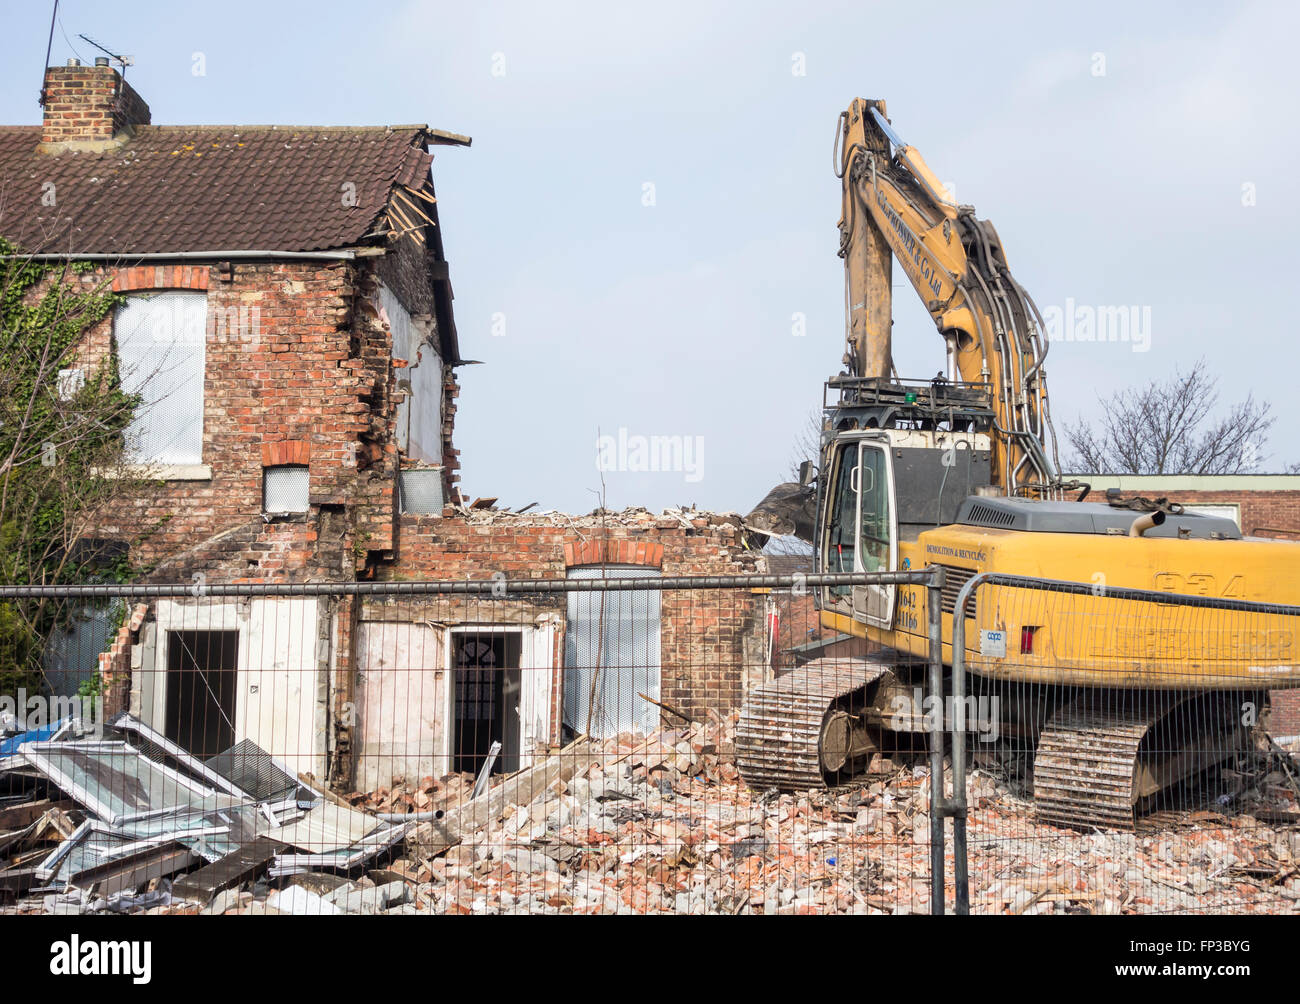 Rows of terraced houses being demolished in Middlesbrough, north east England - Stock Image